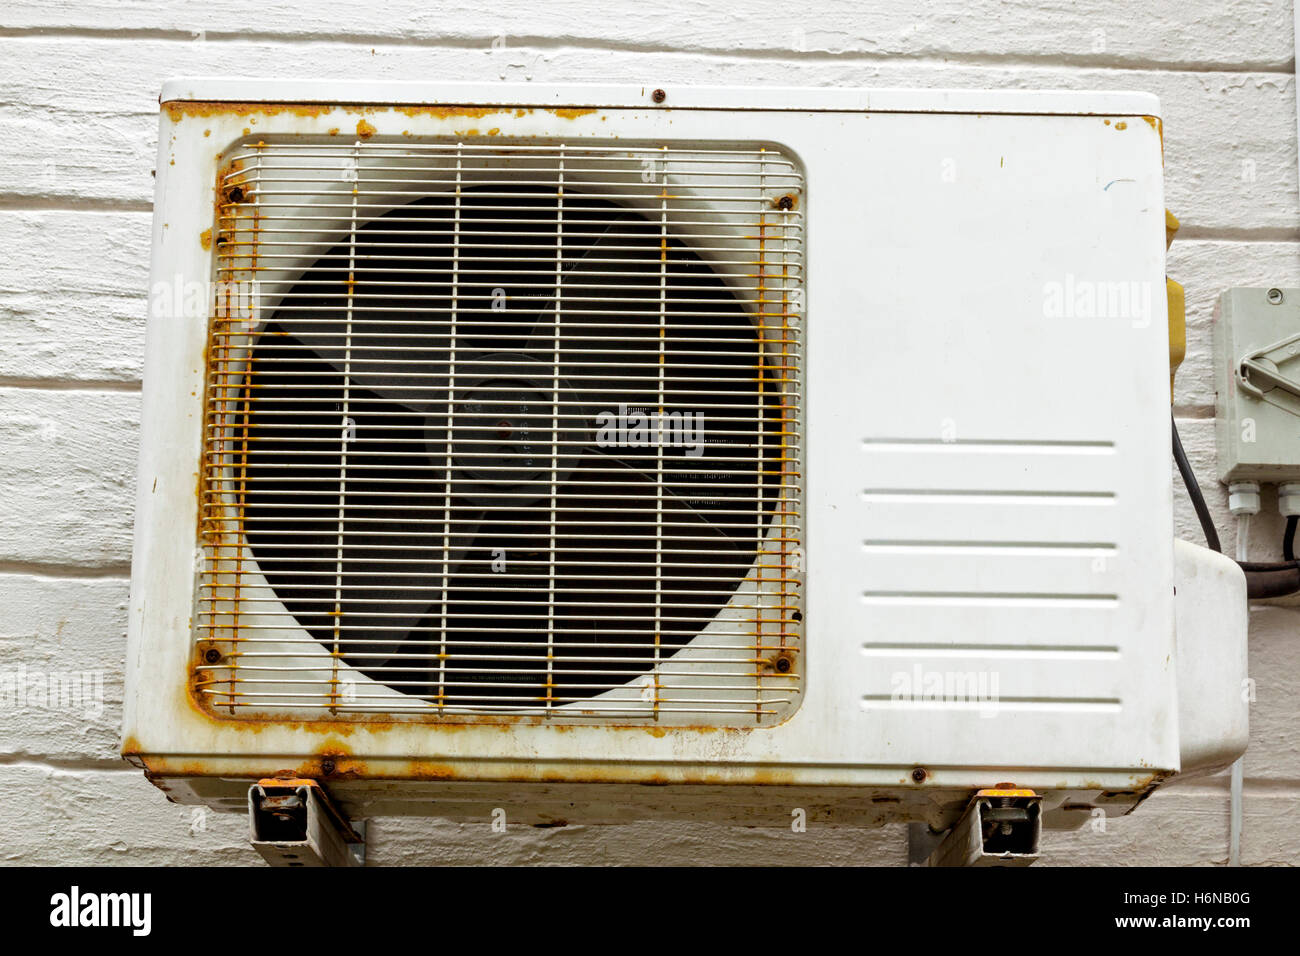 Old vintage rusting metal exterior fitted air conditioning